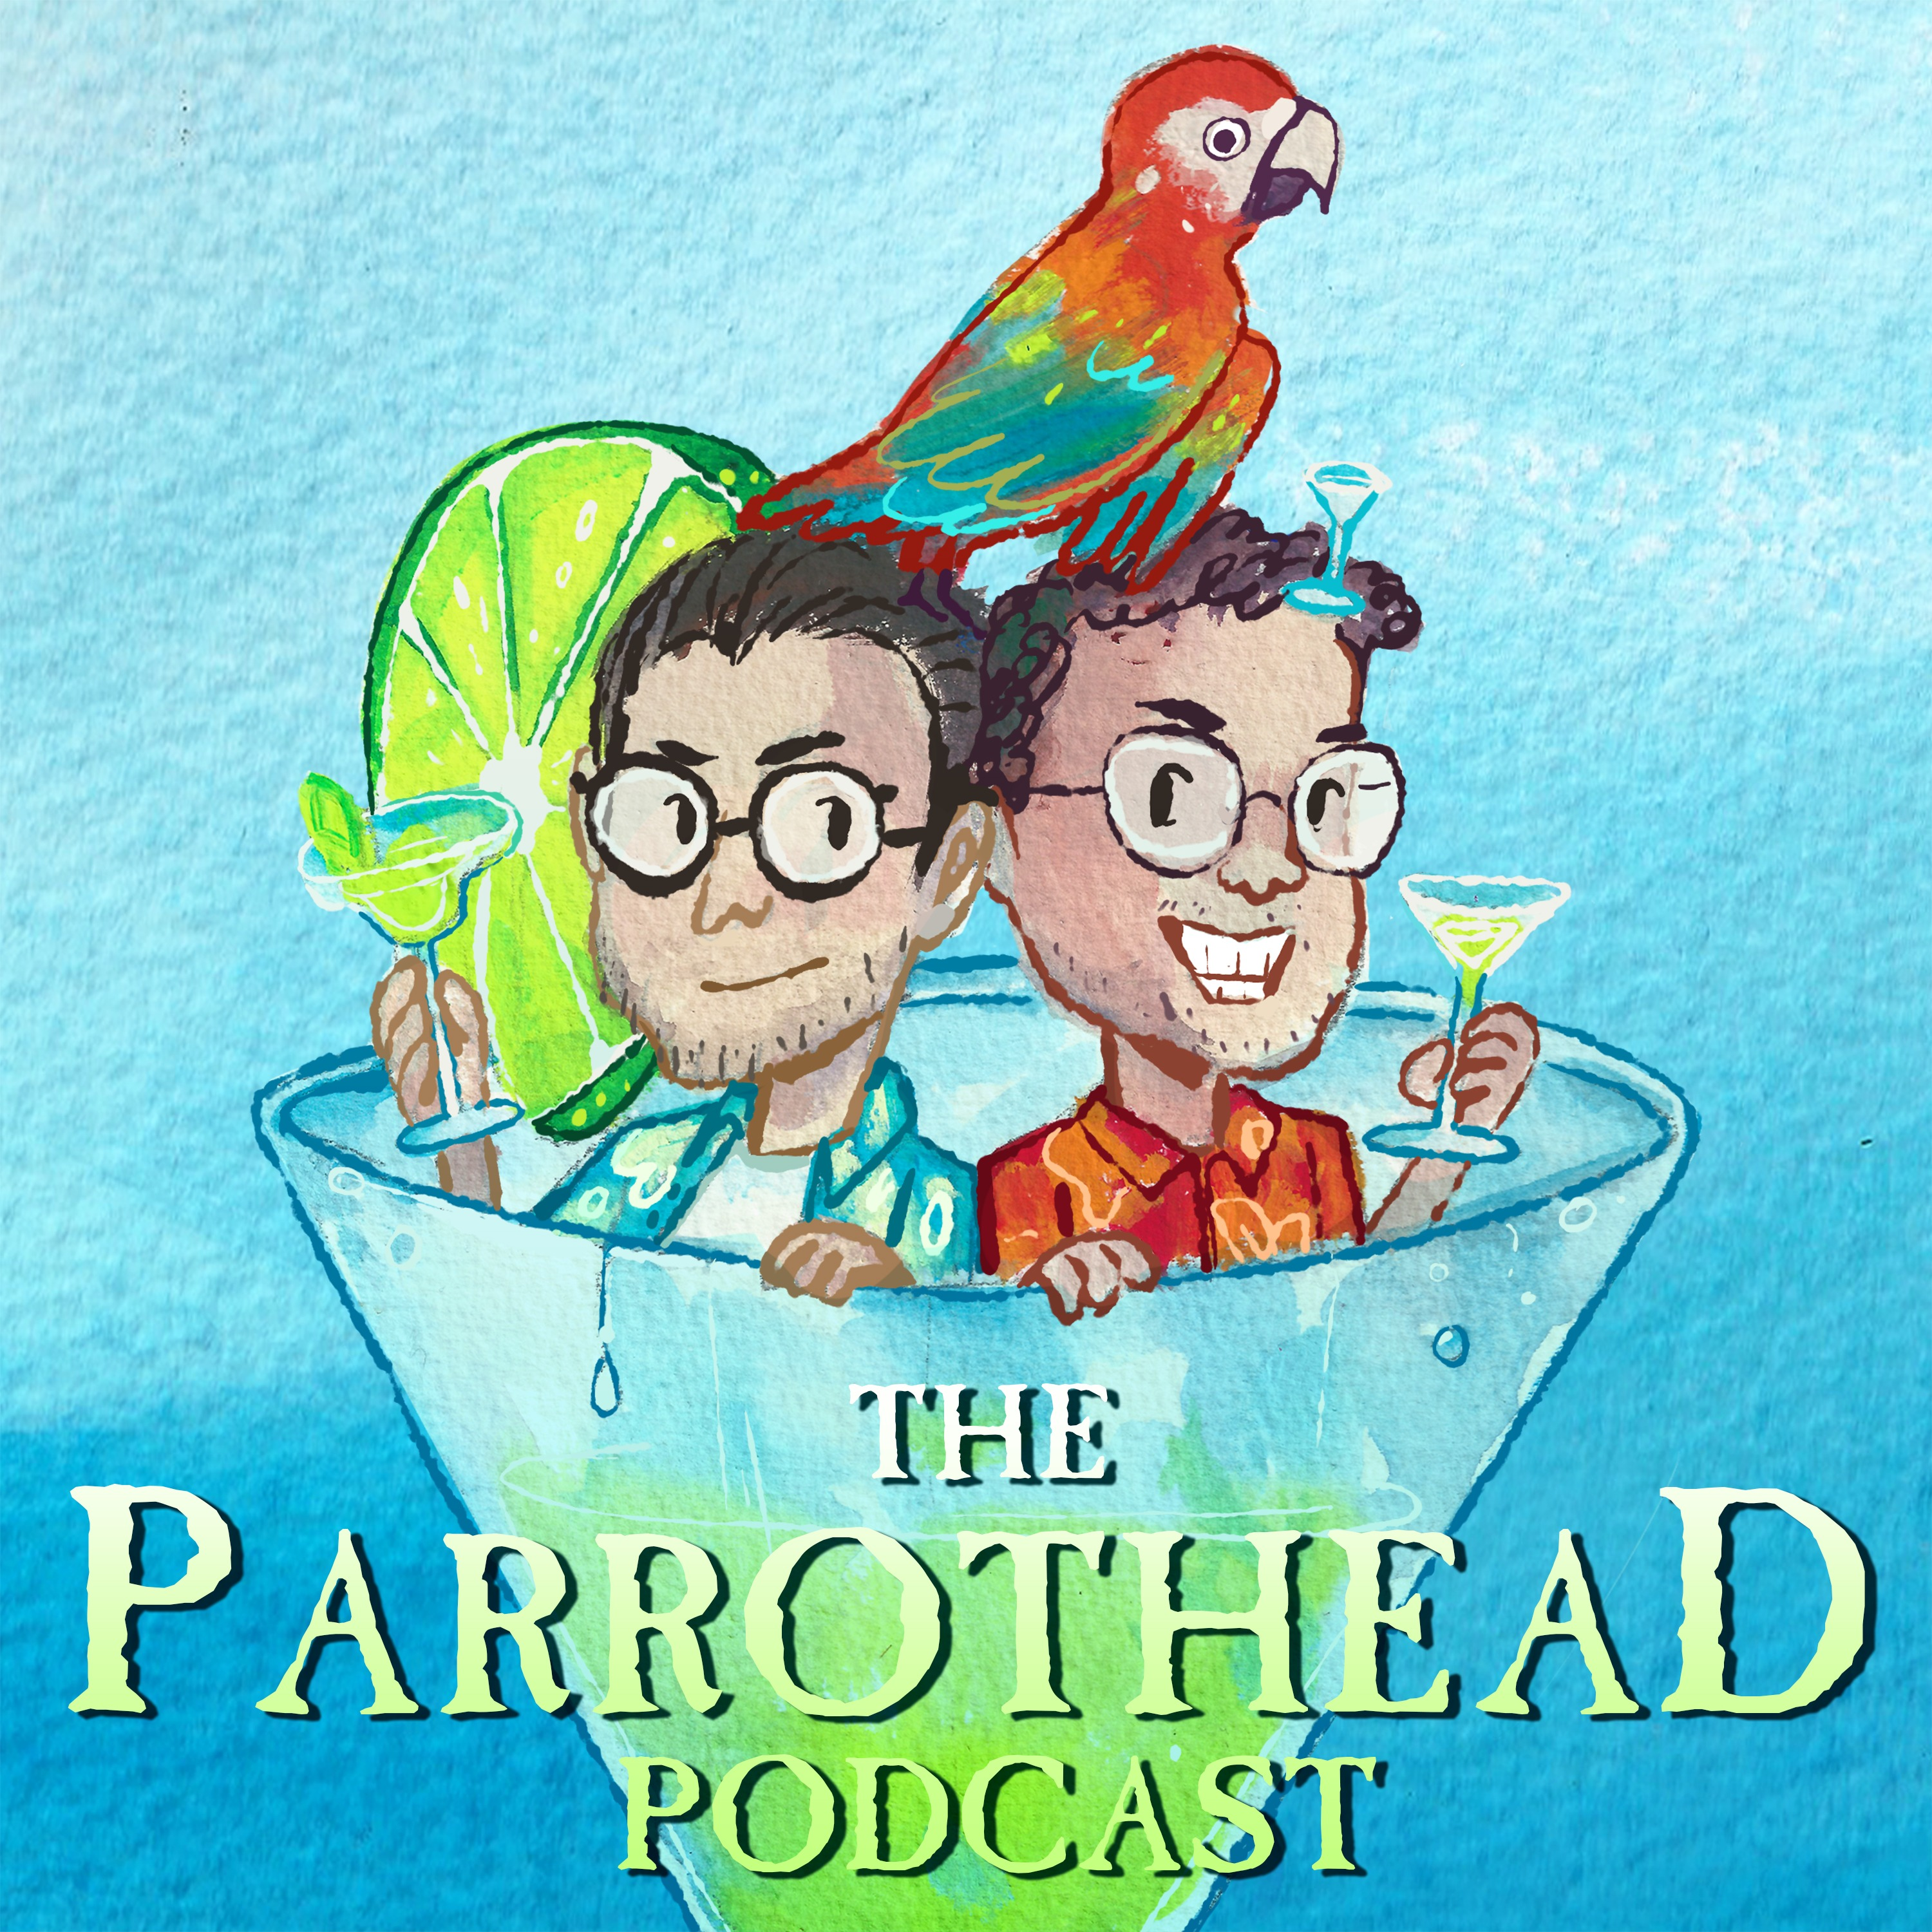 The Parrothead Podcast: All Things Jimmy Buffett on Apple